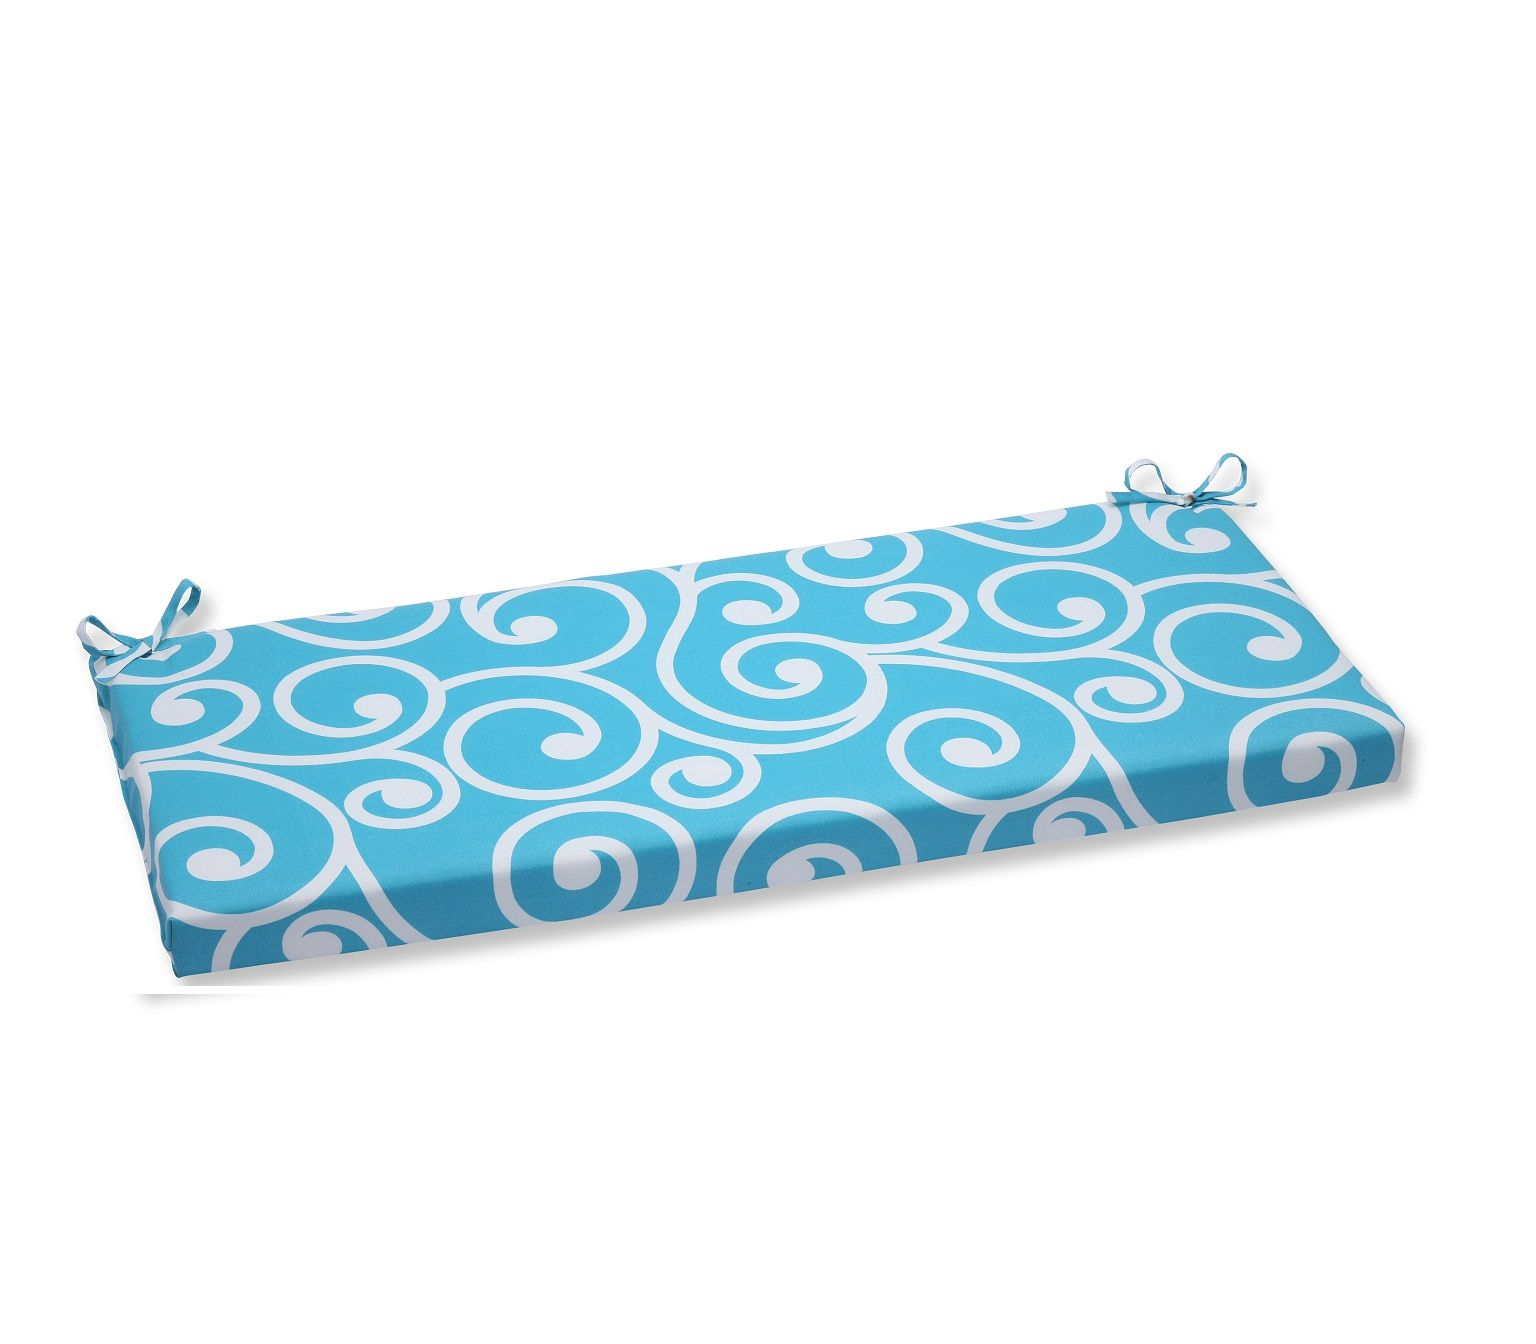 45 Coastal Serenity Turquoise And White Swirl Outdoor Patio Bench Cushion 32587901 Patio Bench Cushions Bench Cushions Perfect Pillow